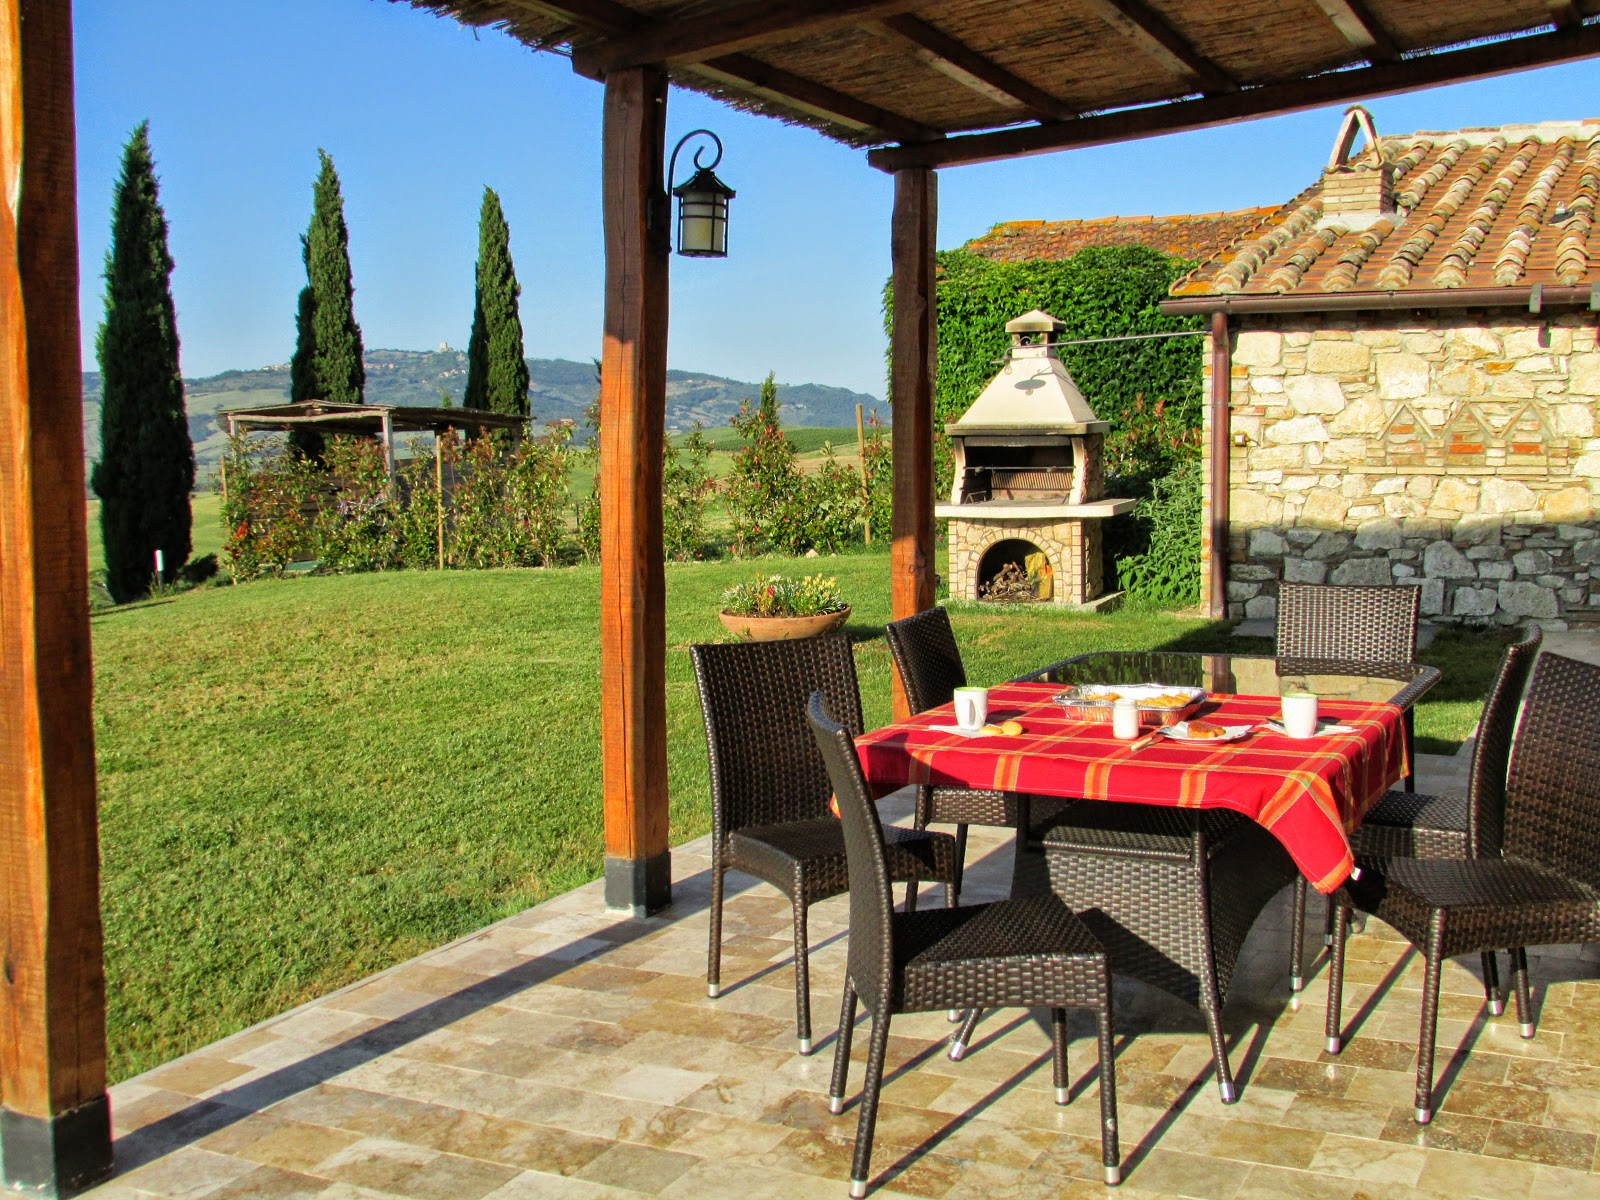 <em>Buongiorno! Breakfast in agriturismo [Photo credits: Lorena Terenghi]</em>